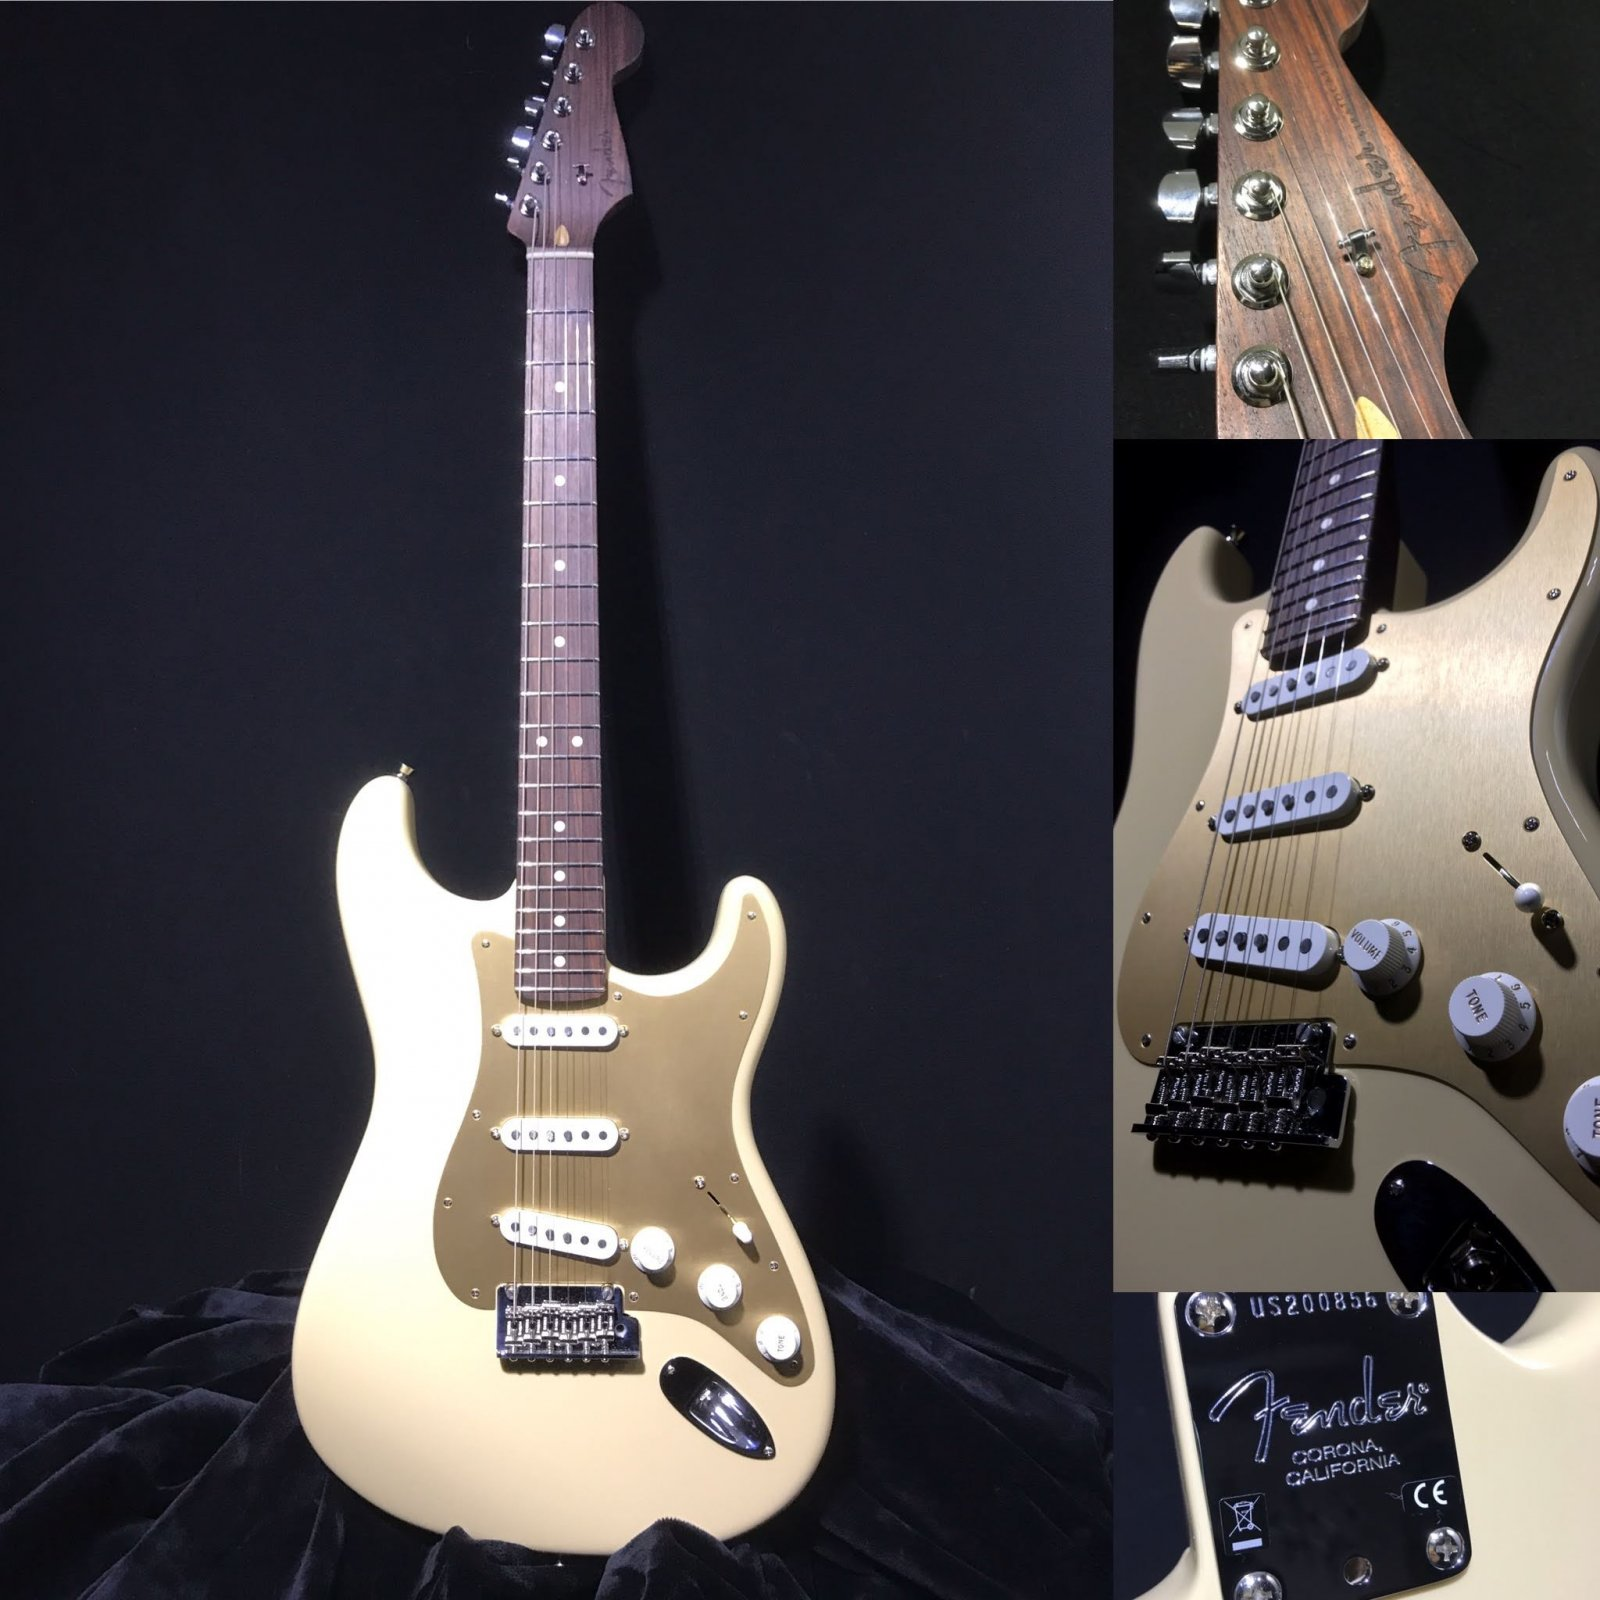 Fender American Professional  Stratocaster Limited Edition Desert Sand Rosewood Neck